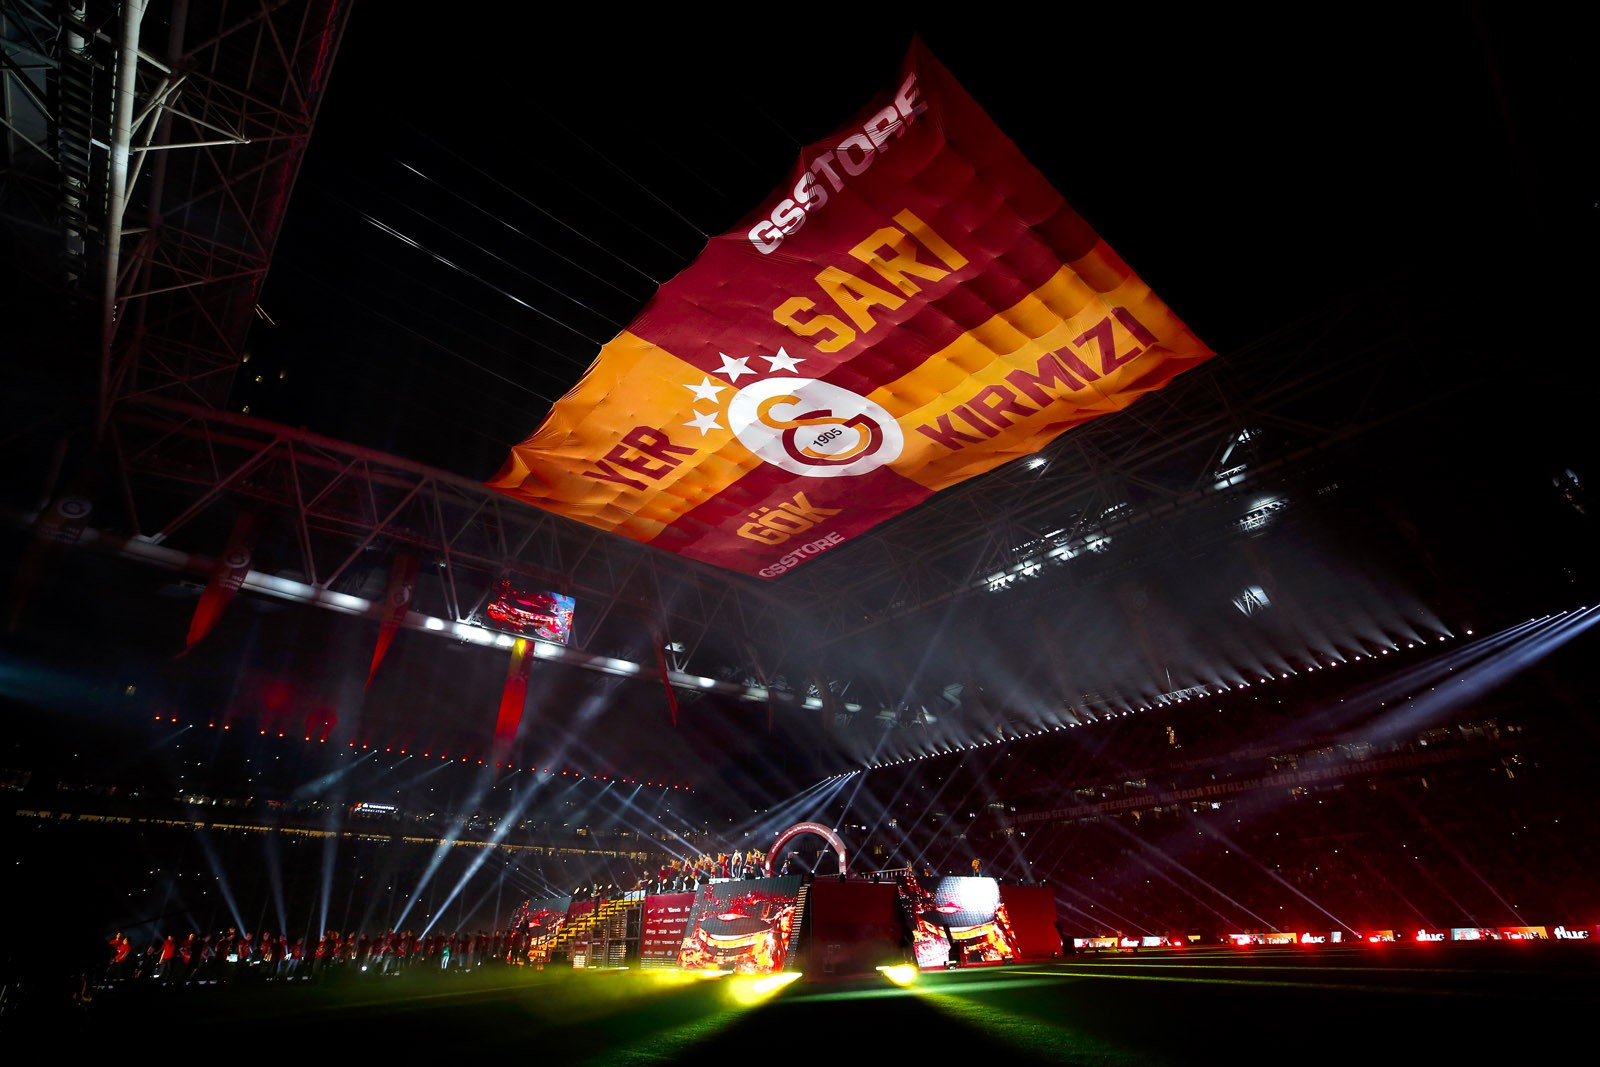 GALATASARAY<br />21th CHAMPIONSHIP CELEBRATION